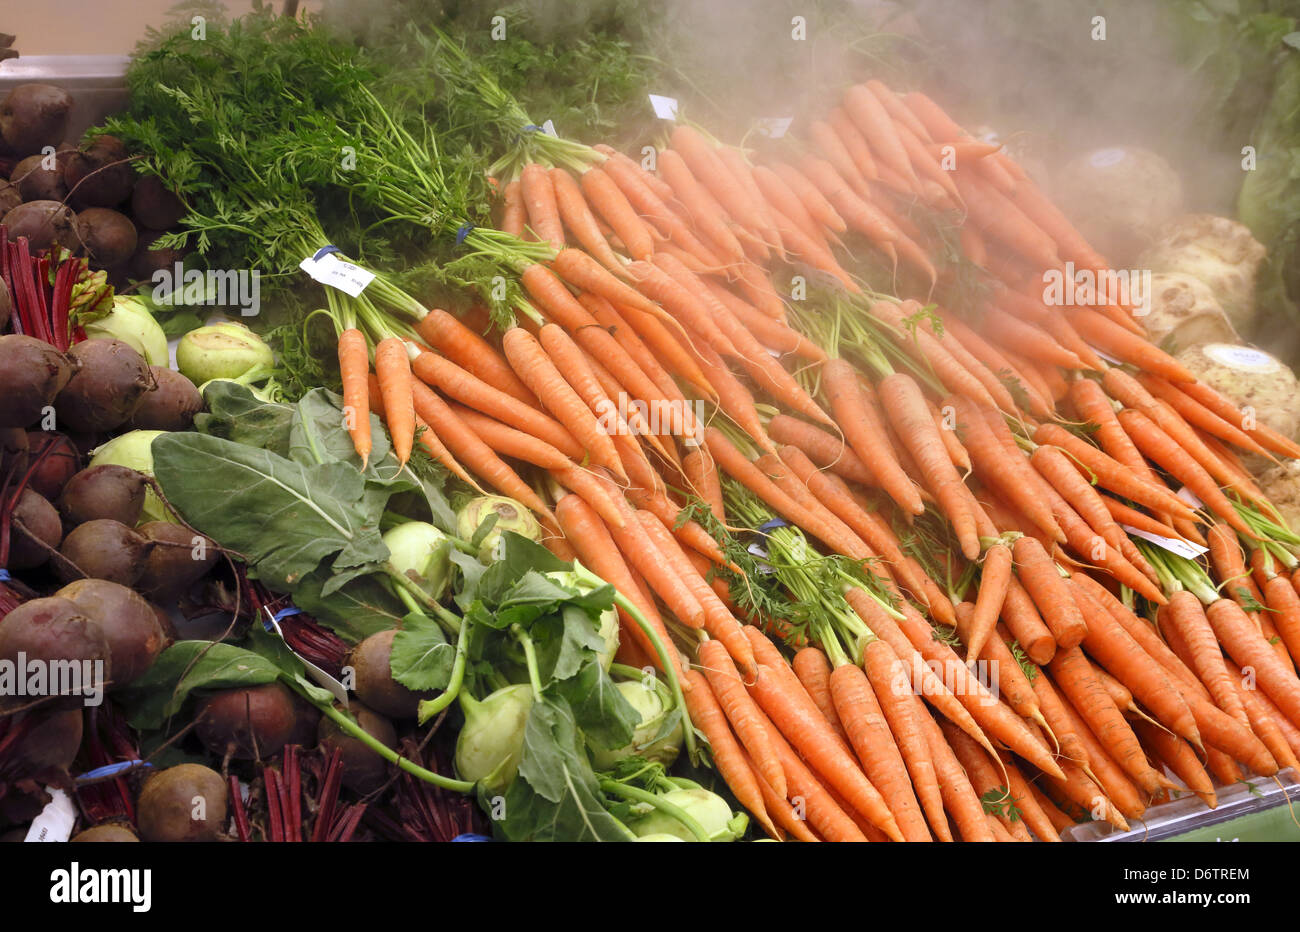 Stock Photo   Vegetables Kept Fresh And Cool With CO2 From Dry Ice, In A  Supermarket